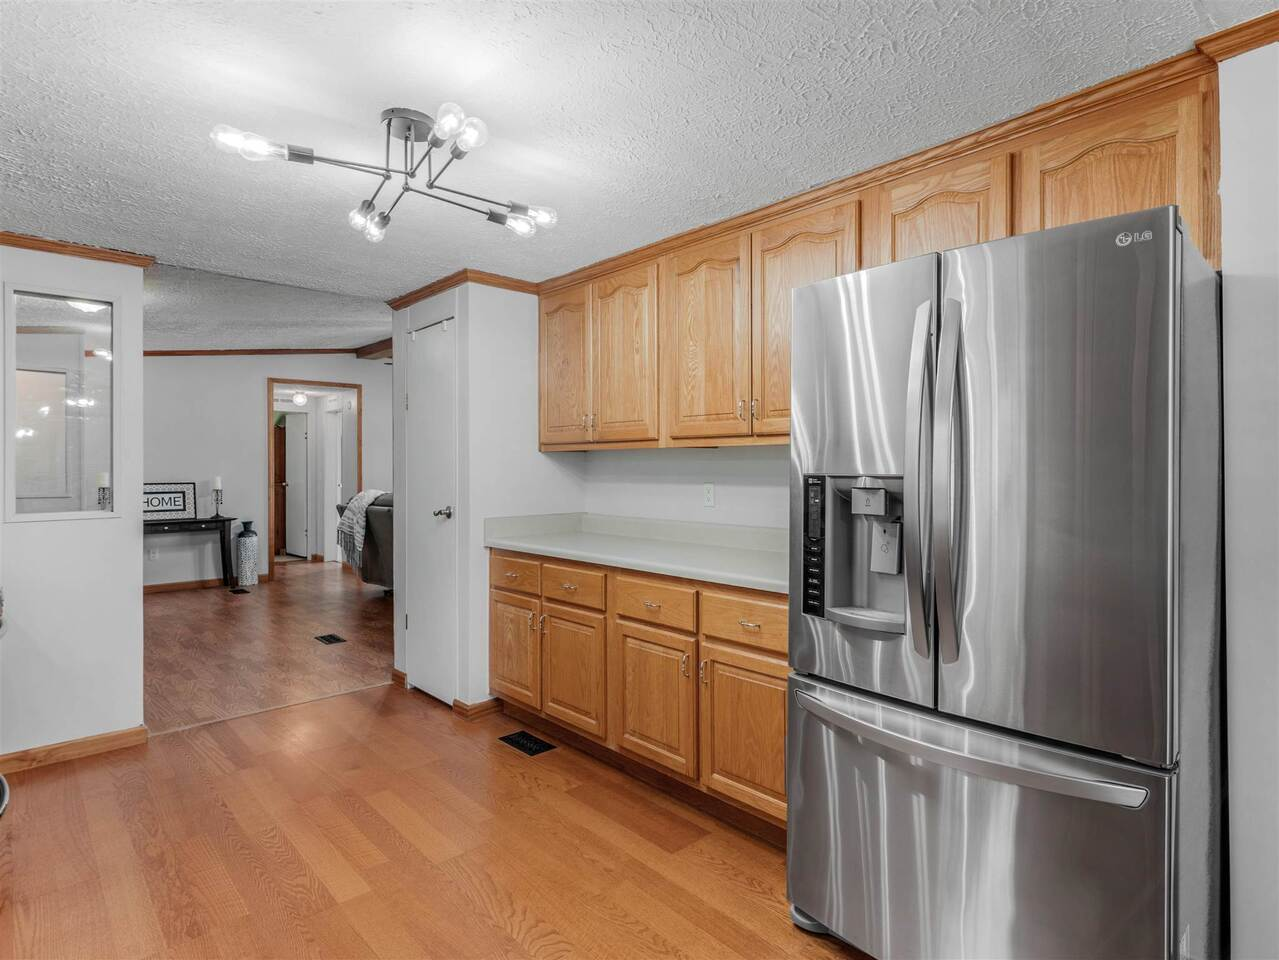 258 Country Kitchen Road Property Photo 3